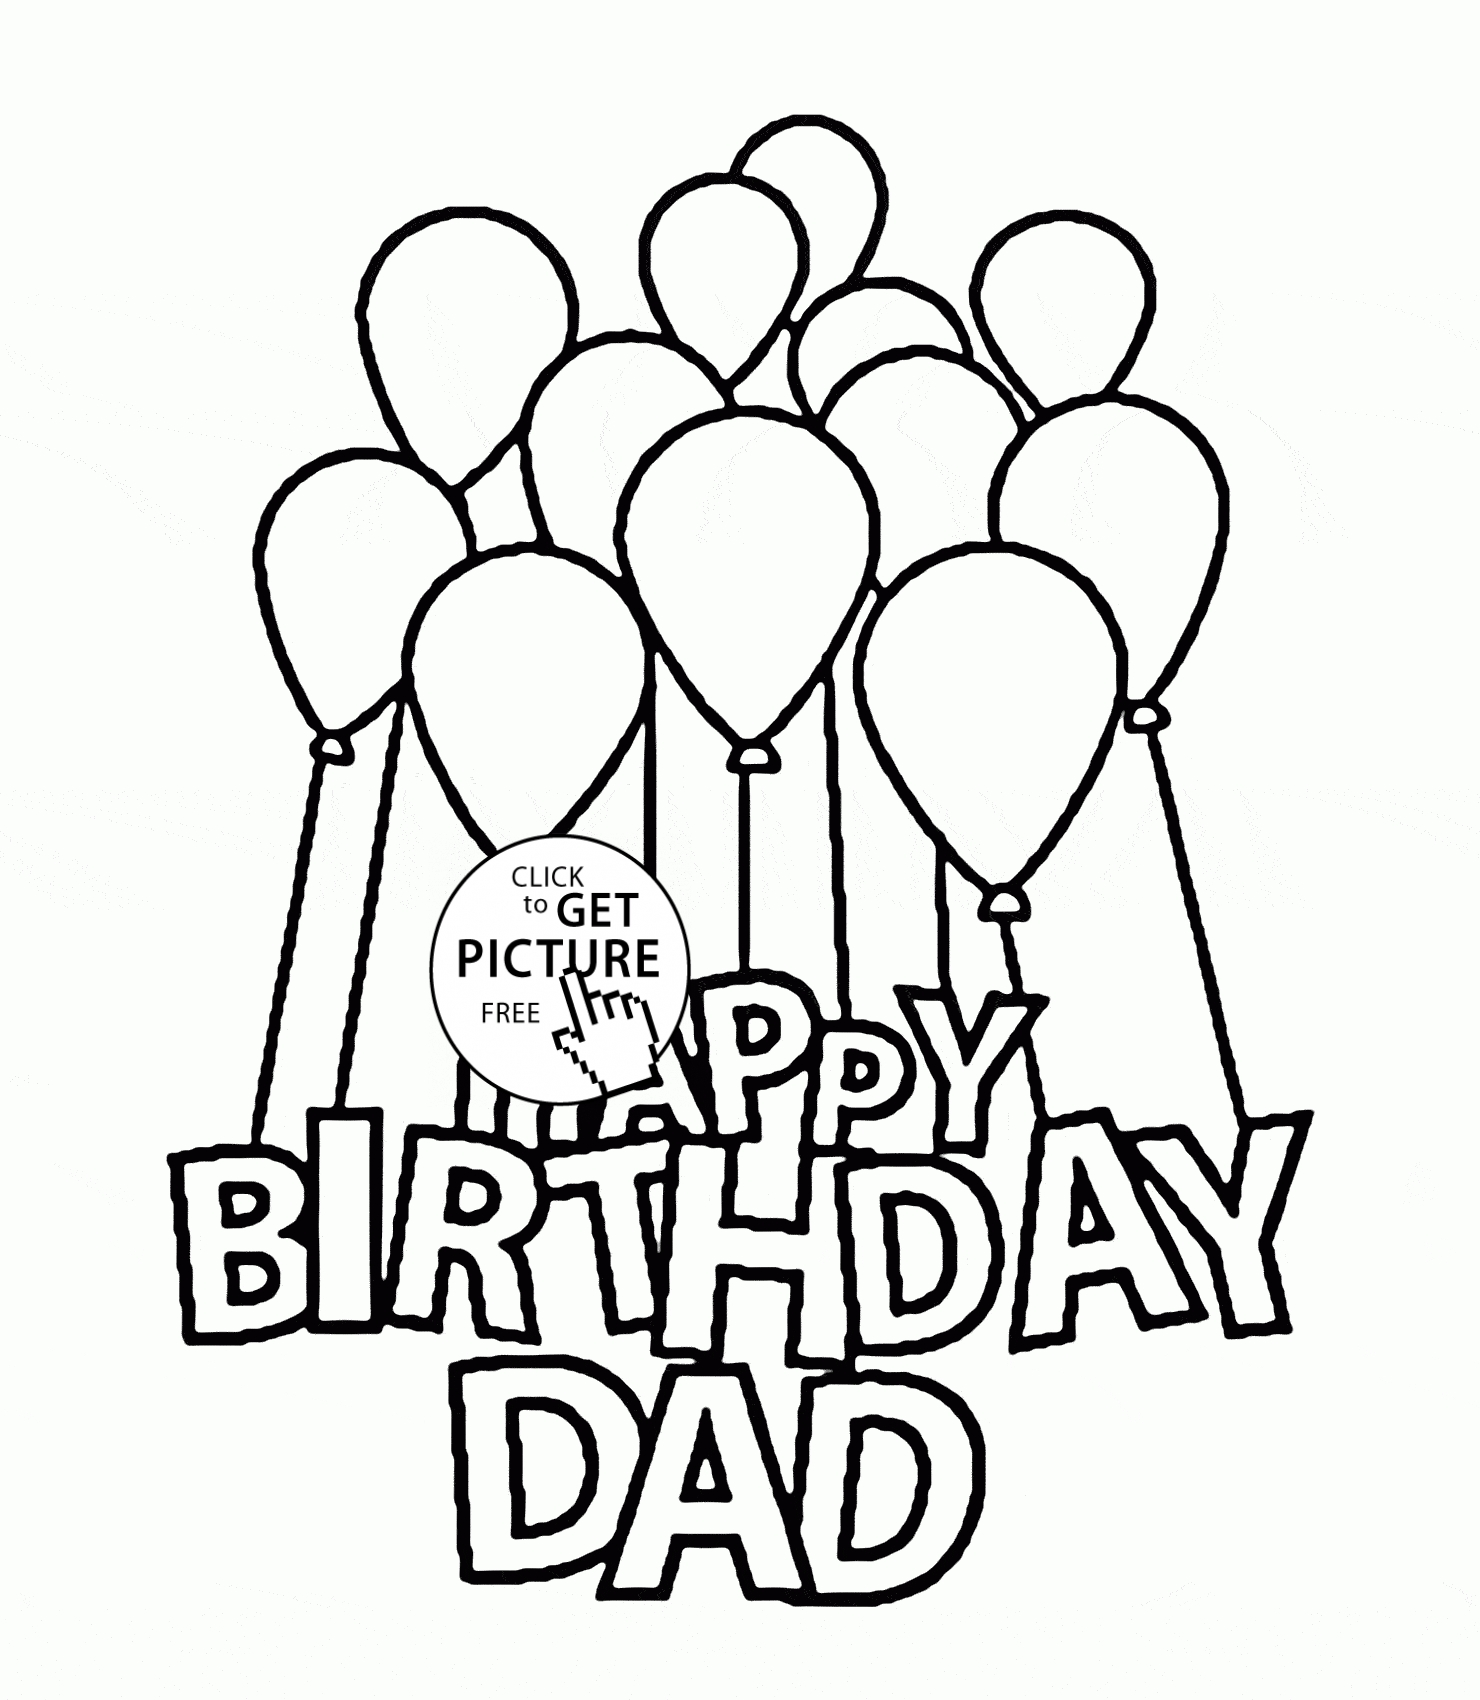 1480x1700 Unique Happy Birthday Dad Coloring Pages Design Free Coloring Pages